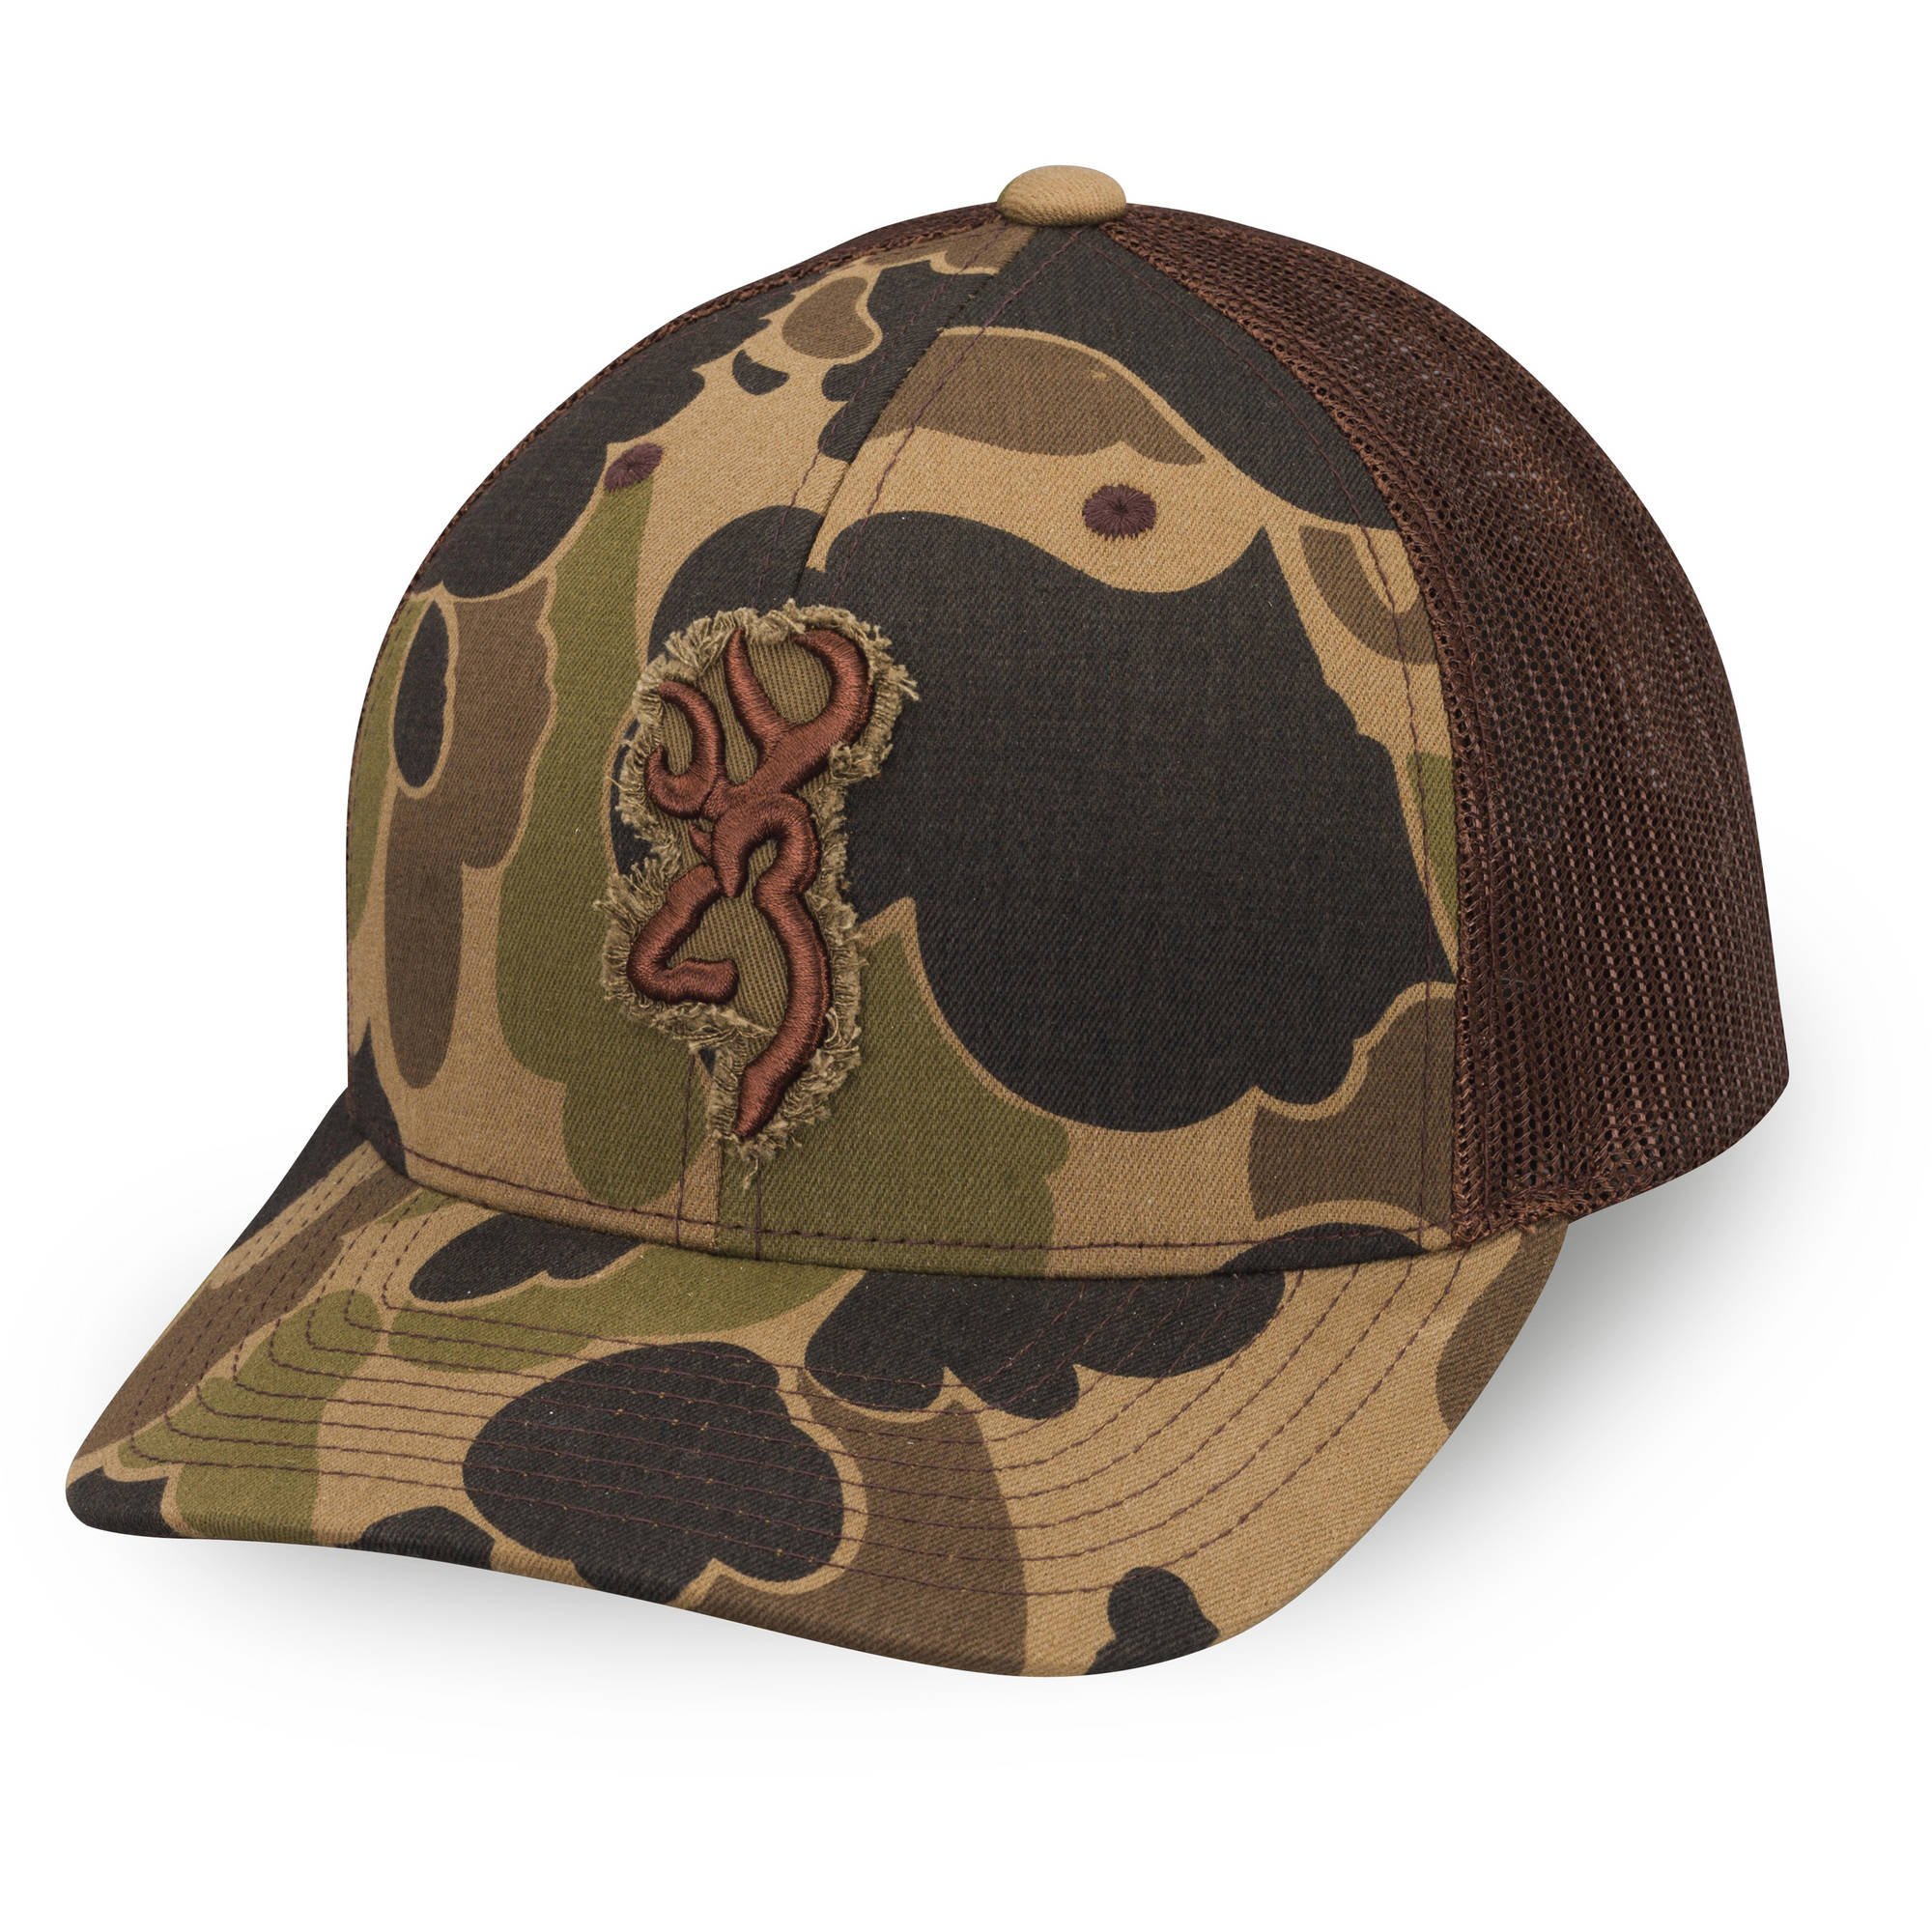 Browning Flashback Cap Camo by Browning